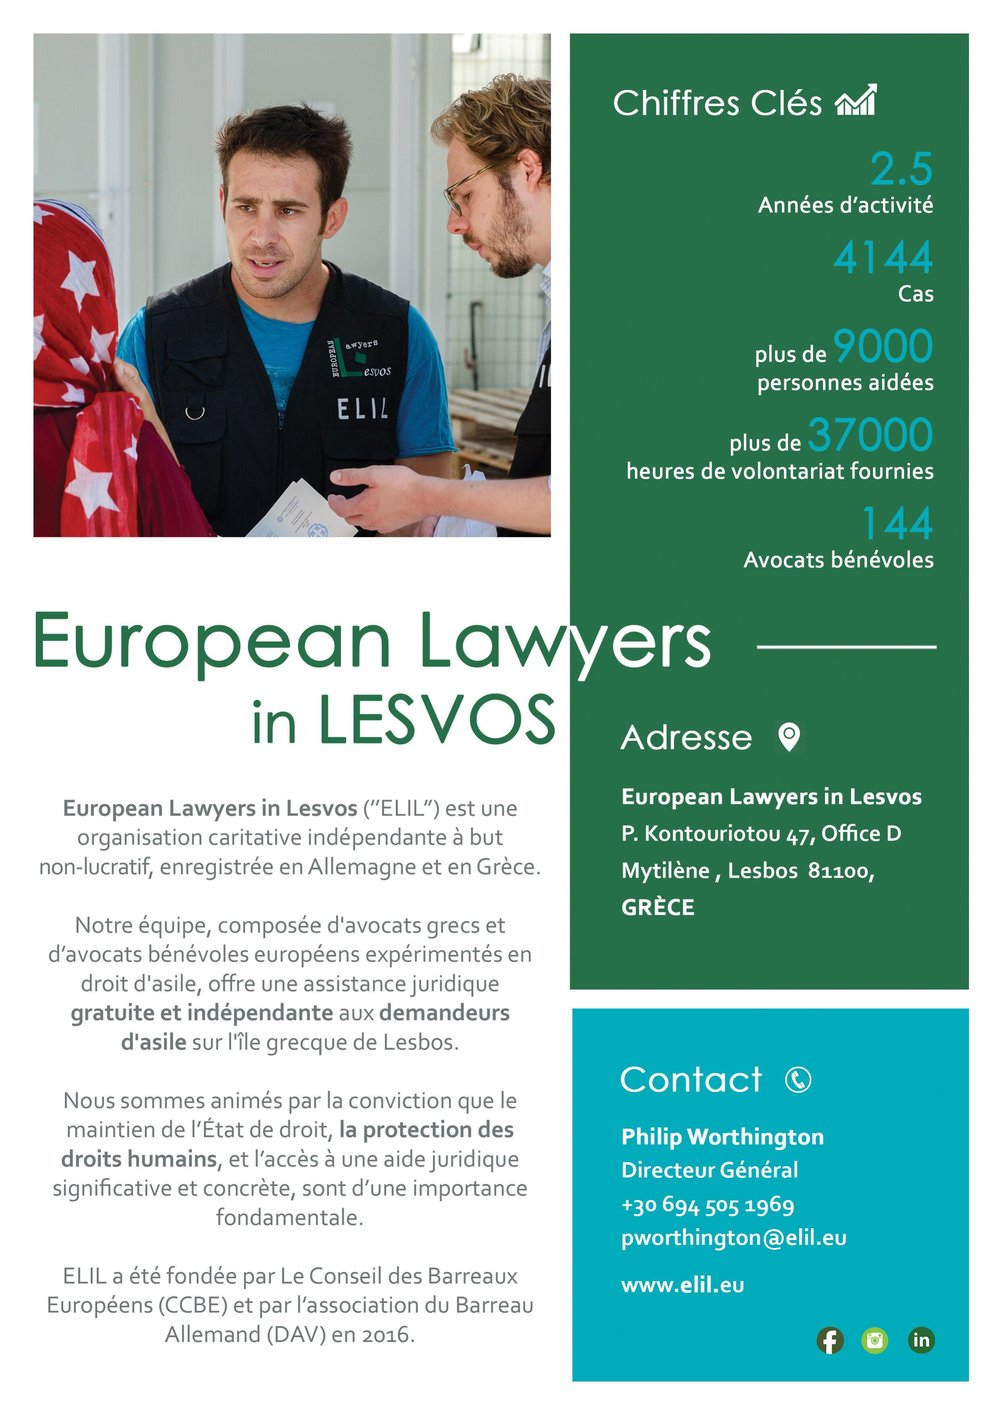 European Lawyers in Lesvos - Infographic_FR-page-001.jpg